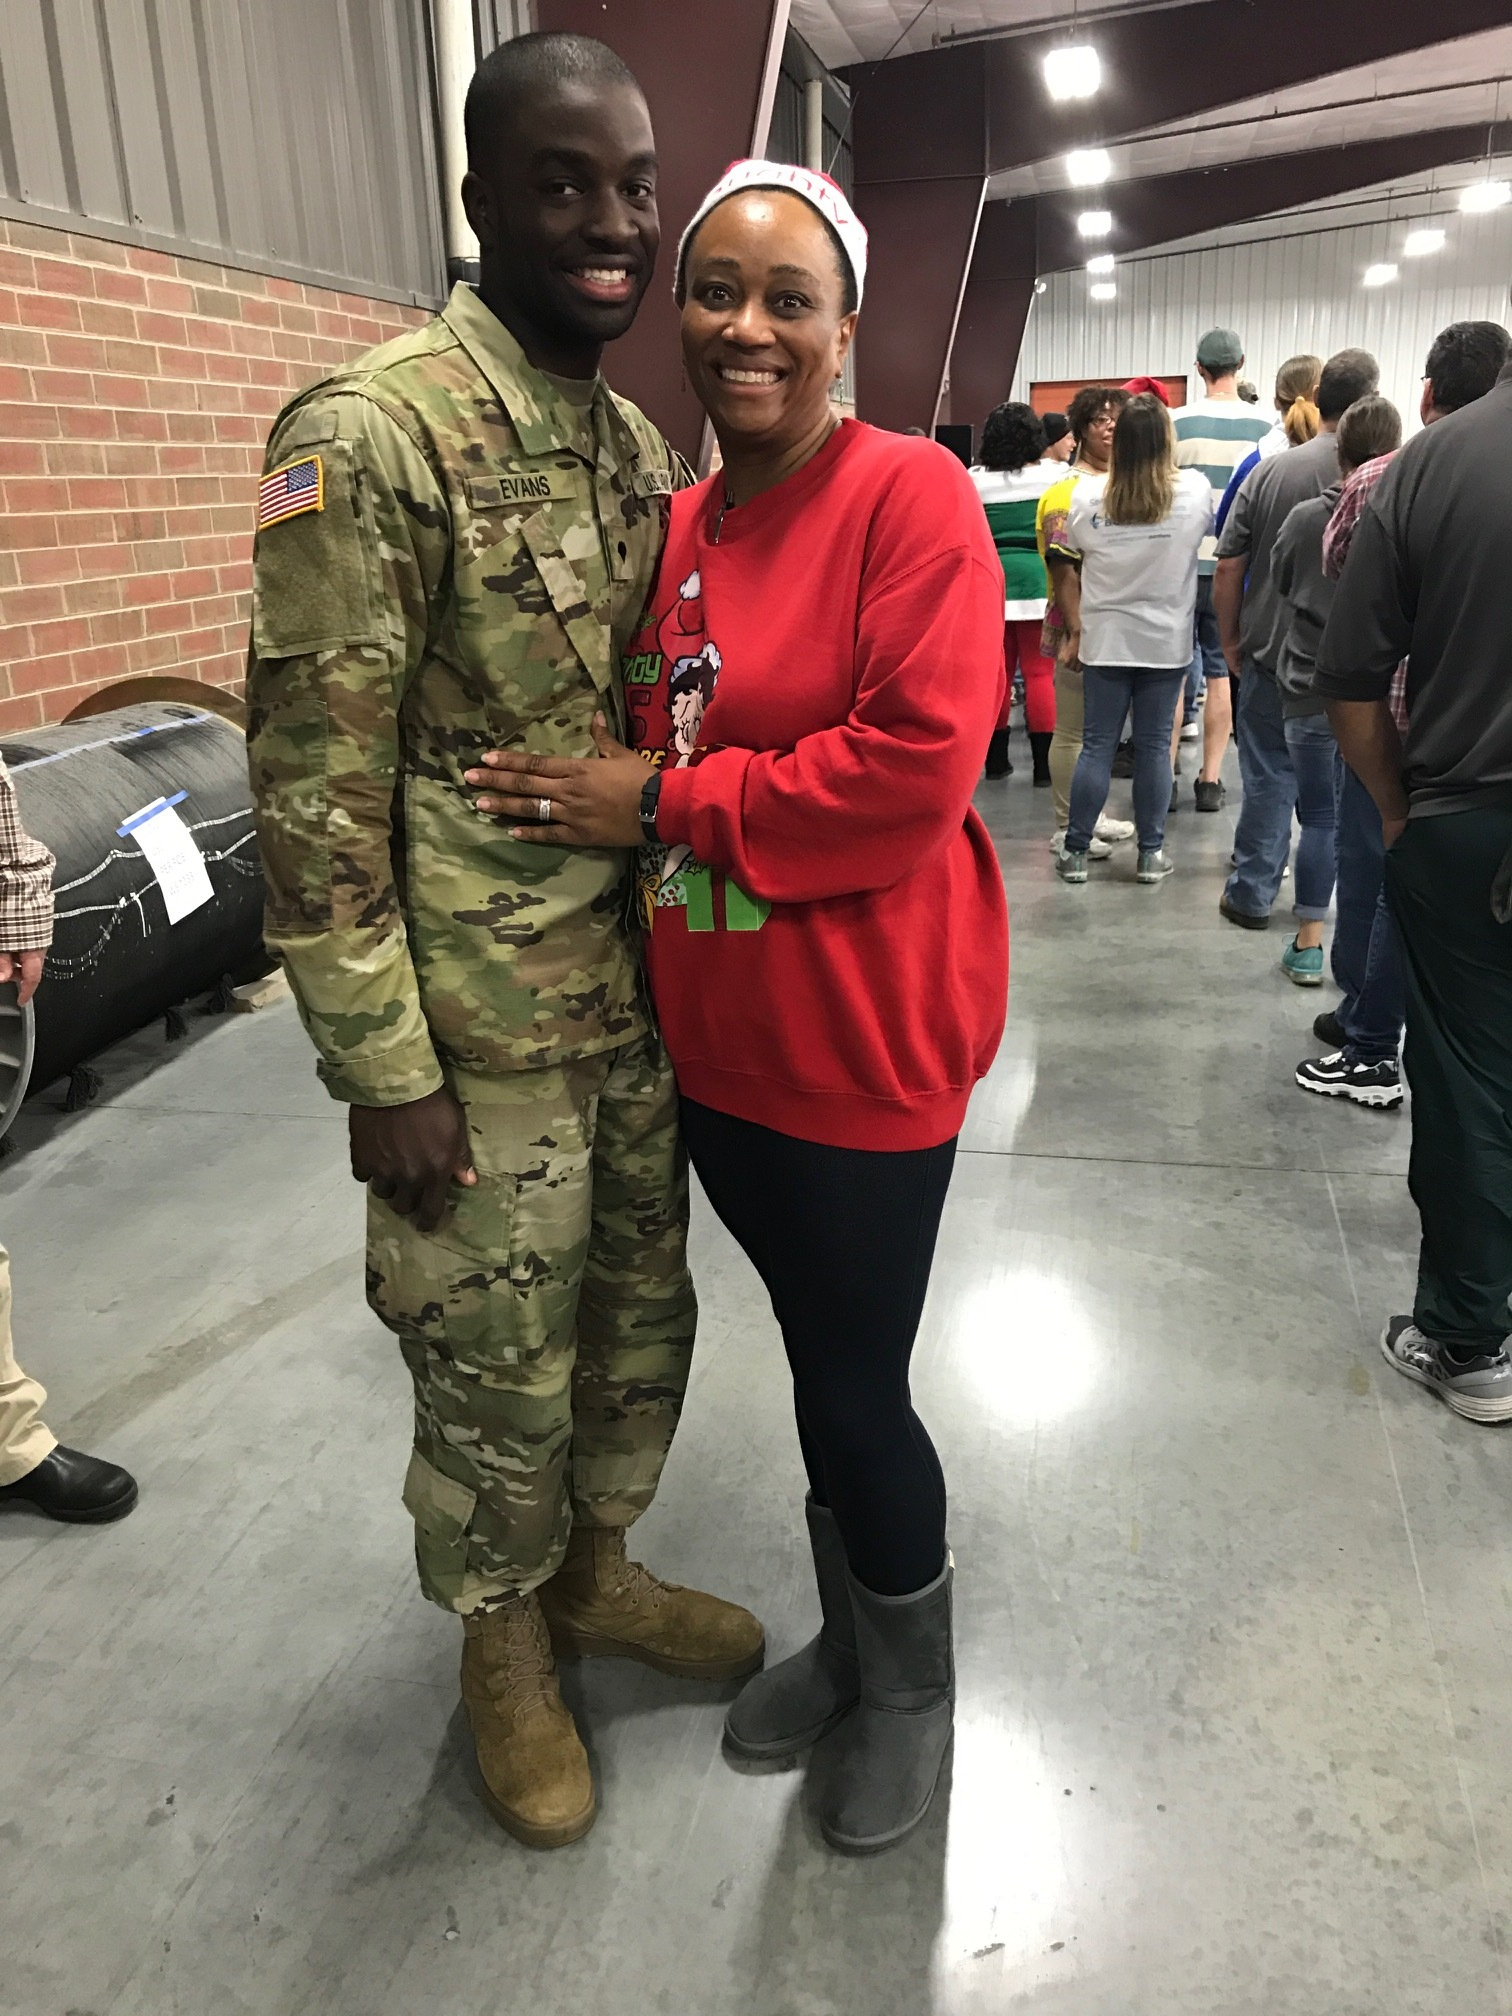 Sherrita Hunt  had a big surprise visit from her son, Kristopher, who was able to leave basic training to spend the holiday with his family. Thank you for your service, Kristopher!